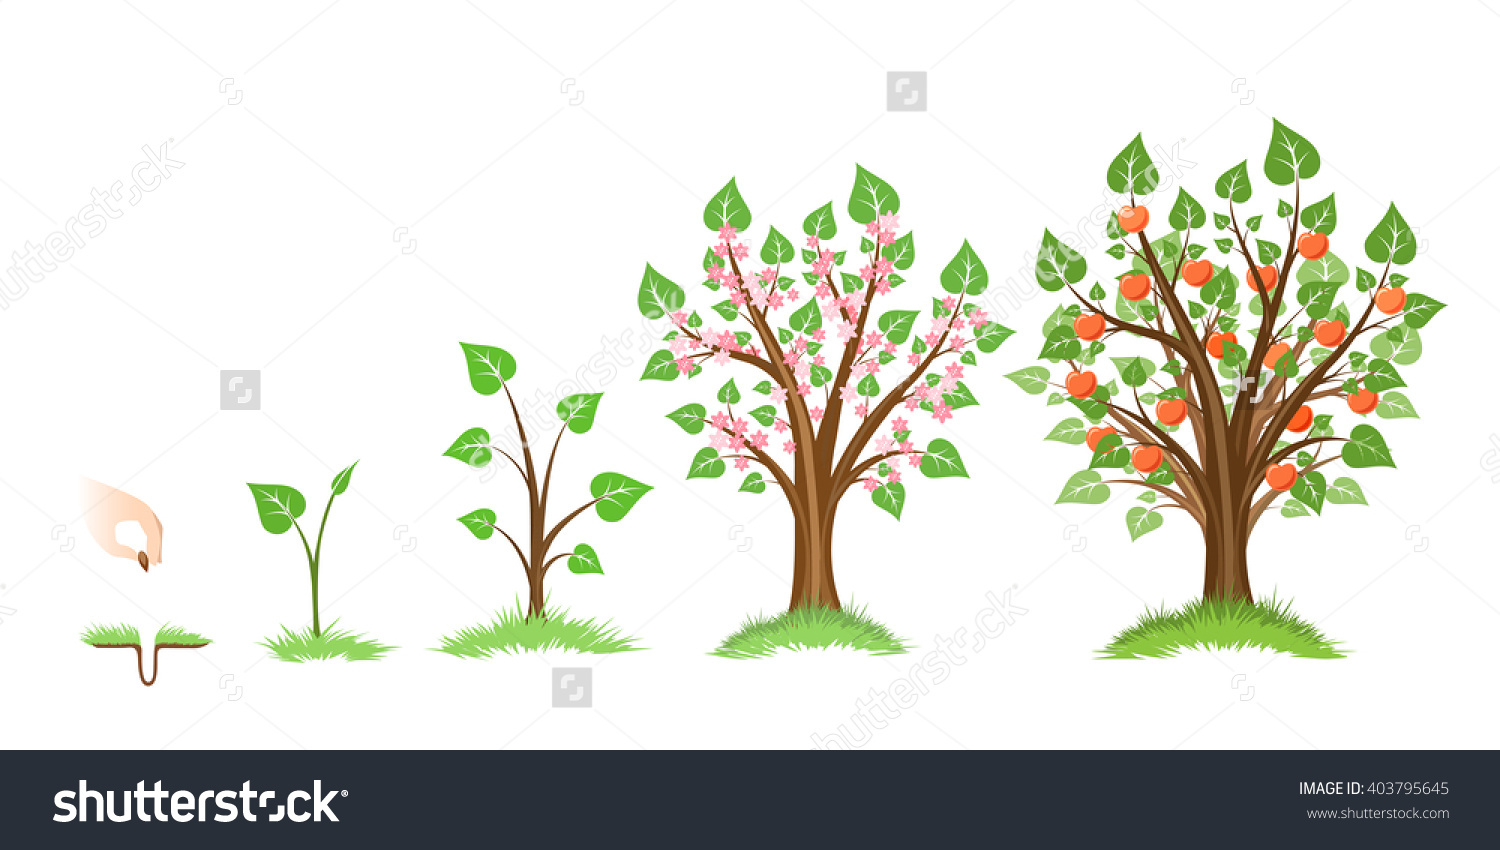 Apple tree cycle clipart jpg transparent download Apple Tree Growth Cycle Plant Cycle Stock Vector 403795645 ... jpg transparent download